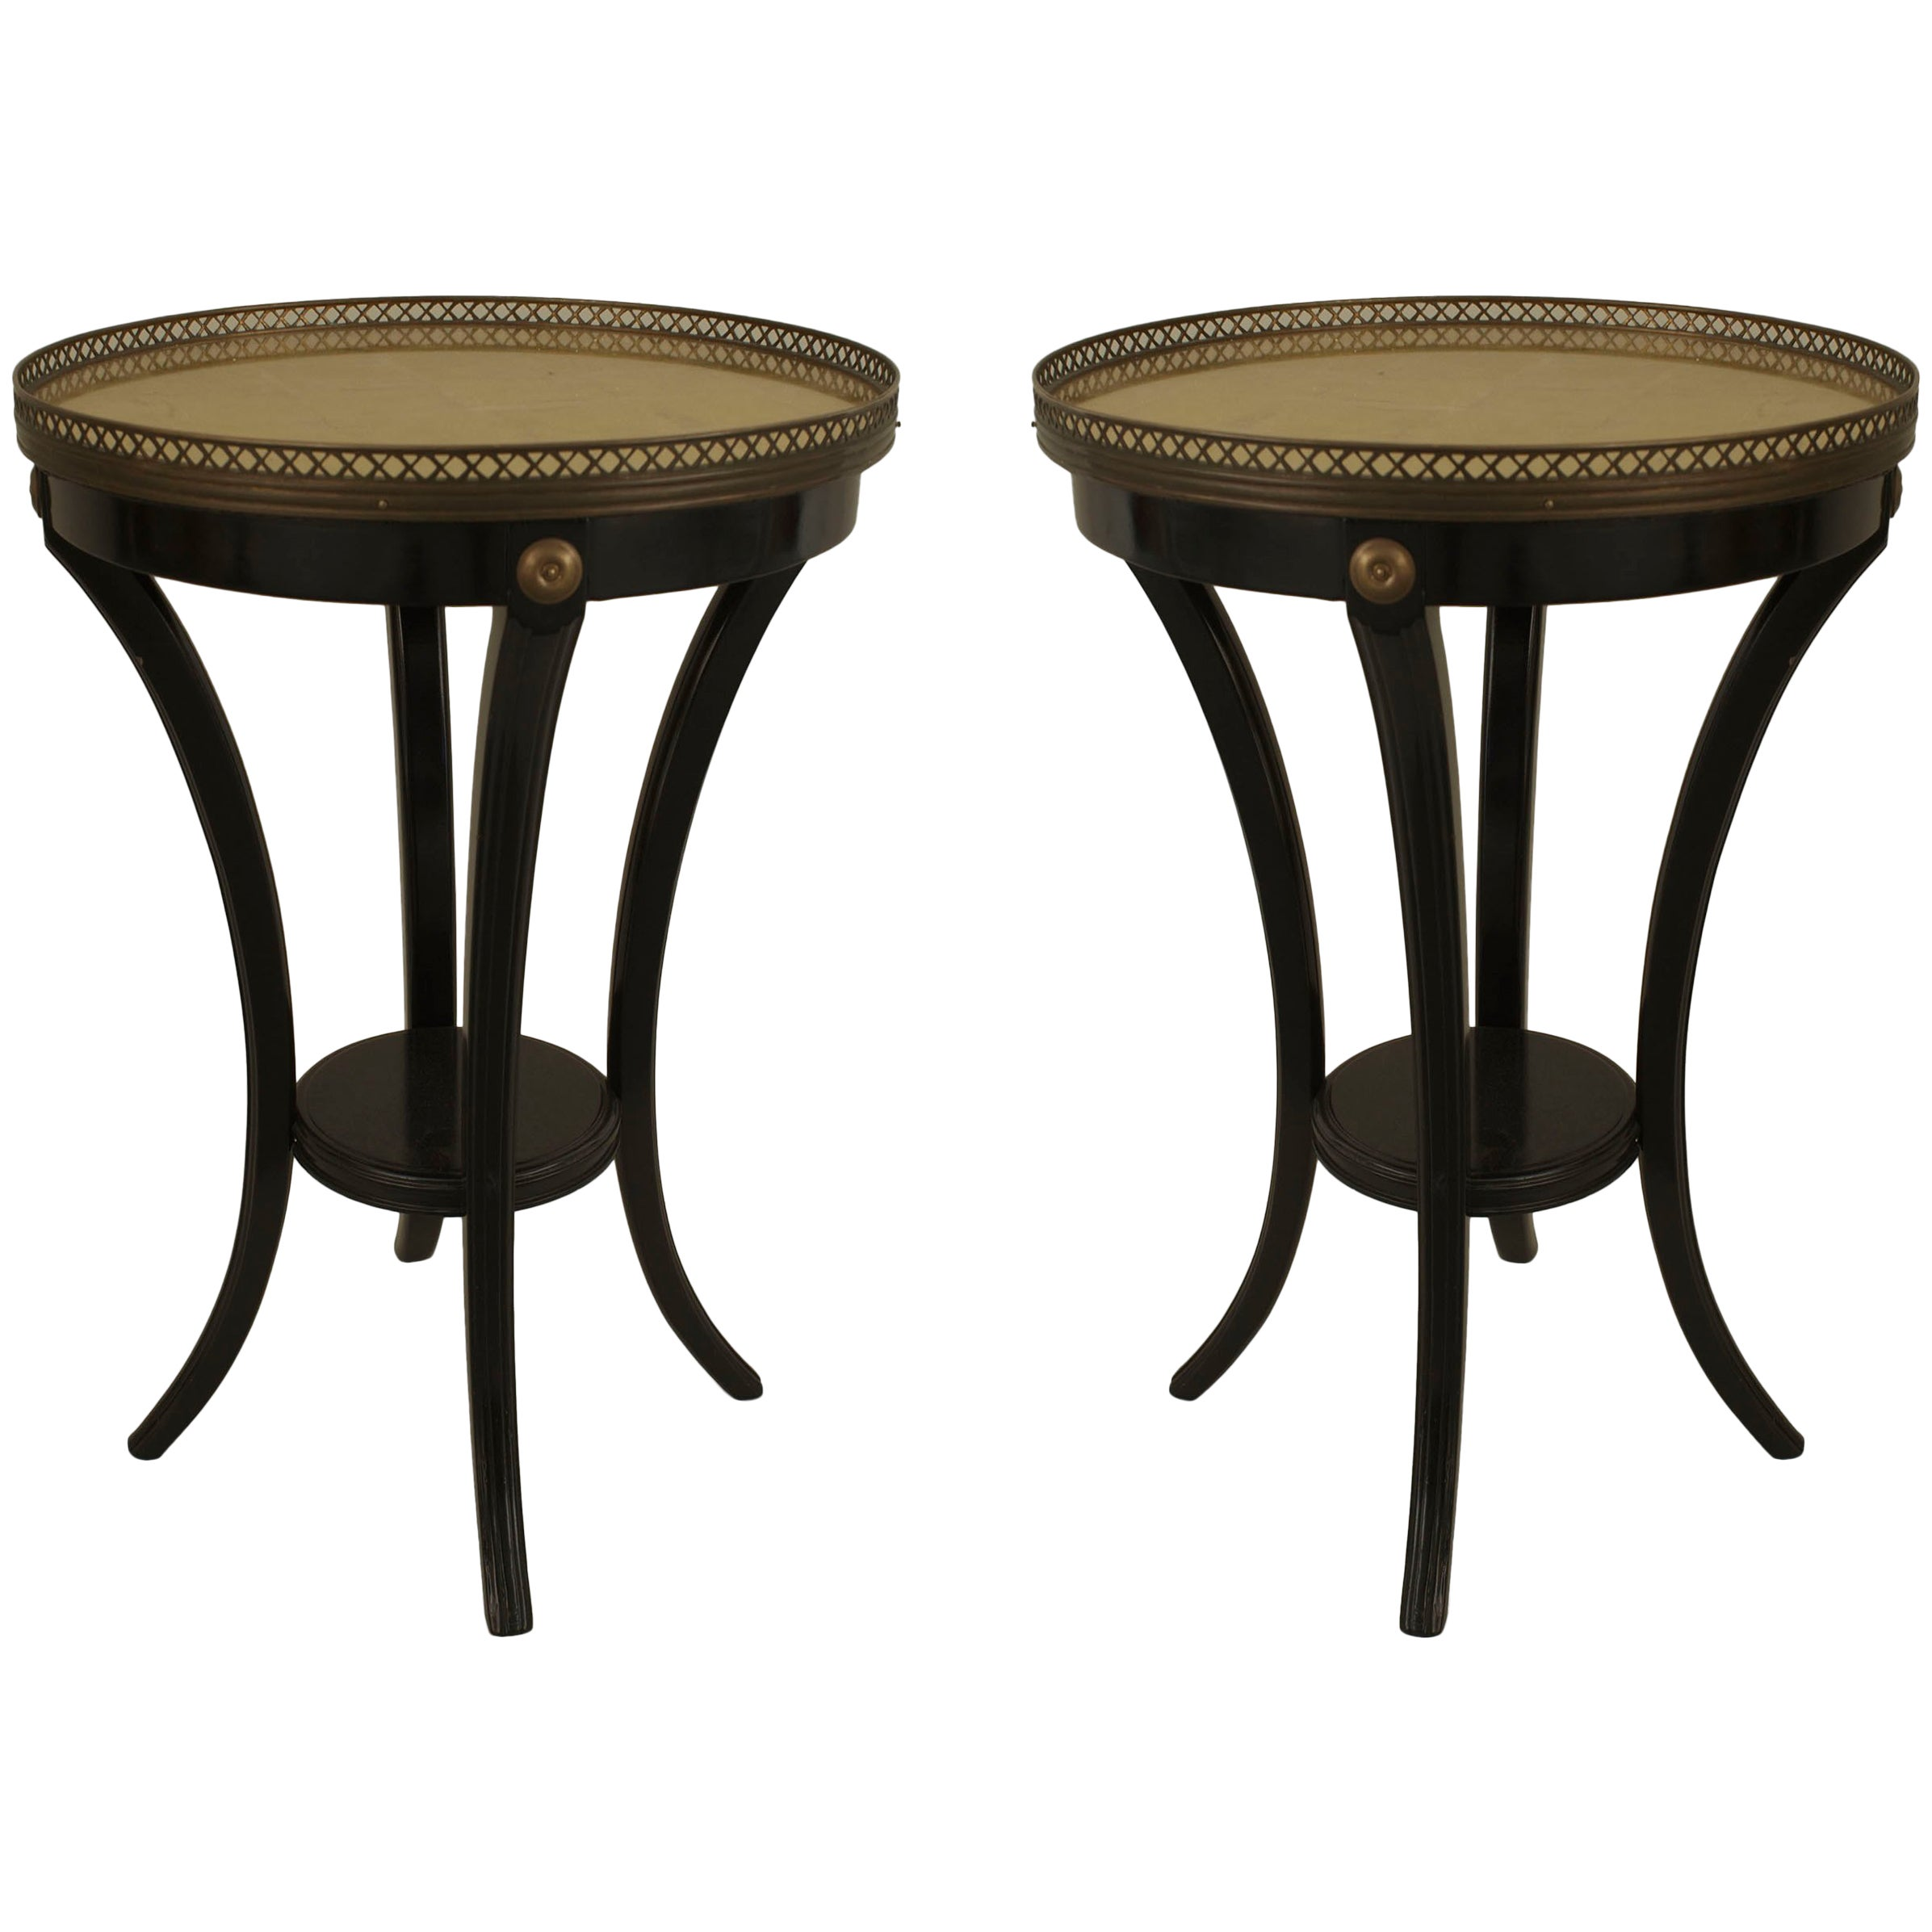 "Pair of French 1940s ""Louis XVI Style"" Ebonized End Tables, by Jansen"